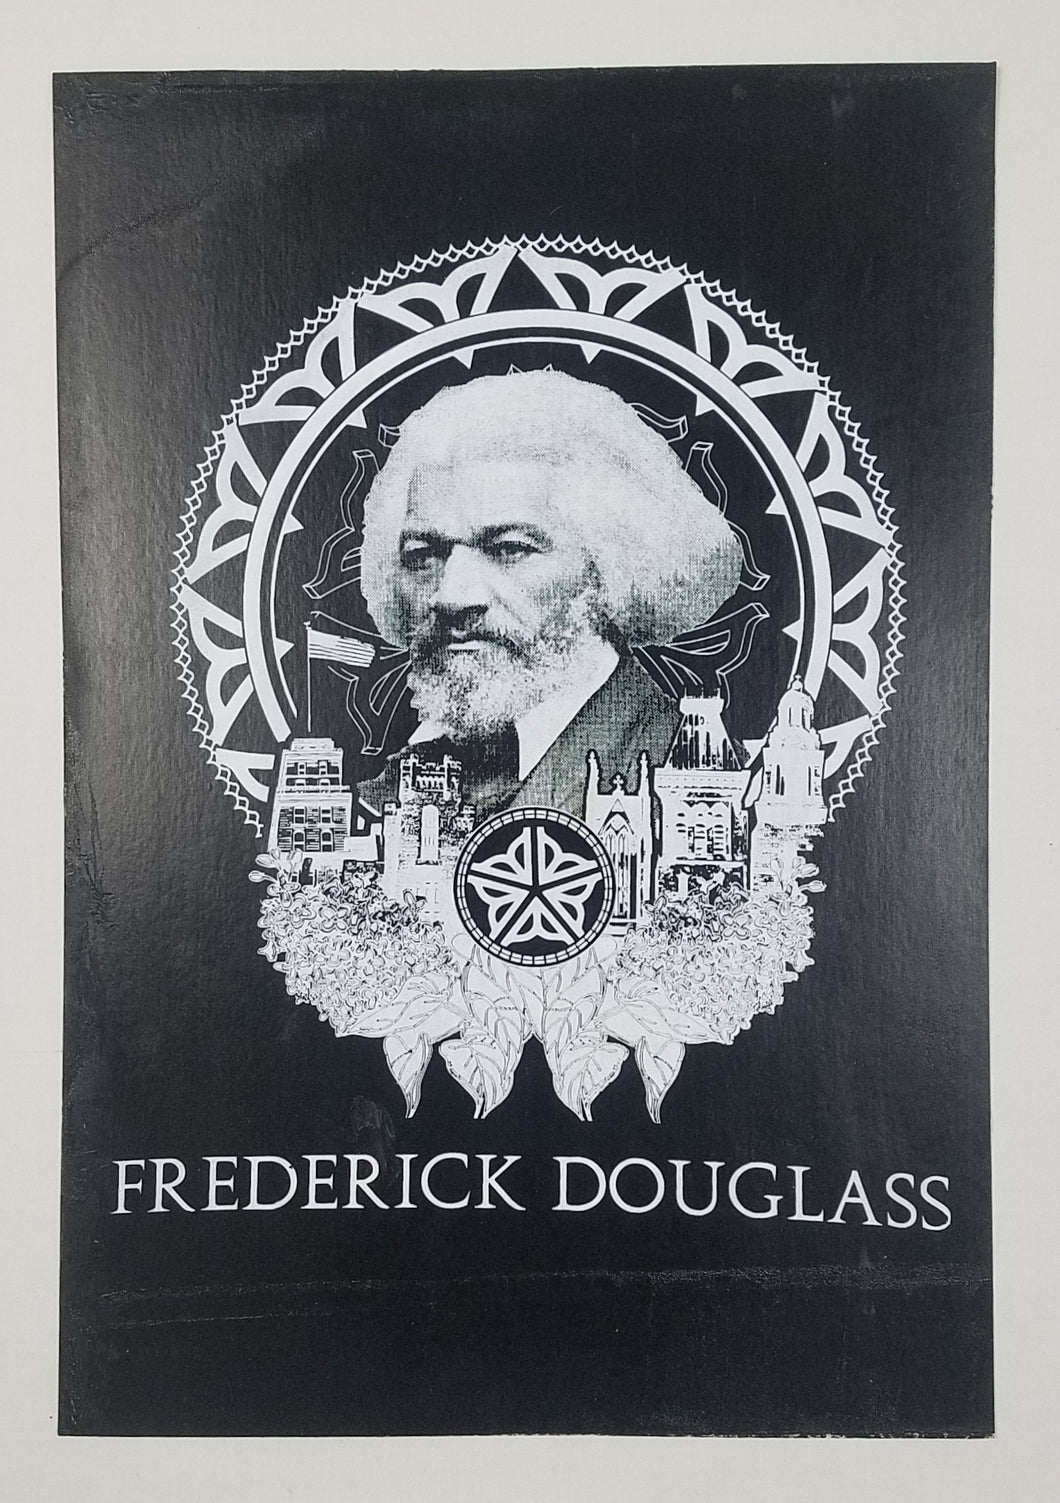 The Frederick Douglass Screen Print Poster 13 X 19